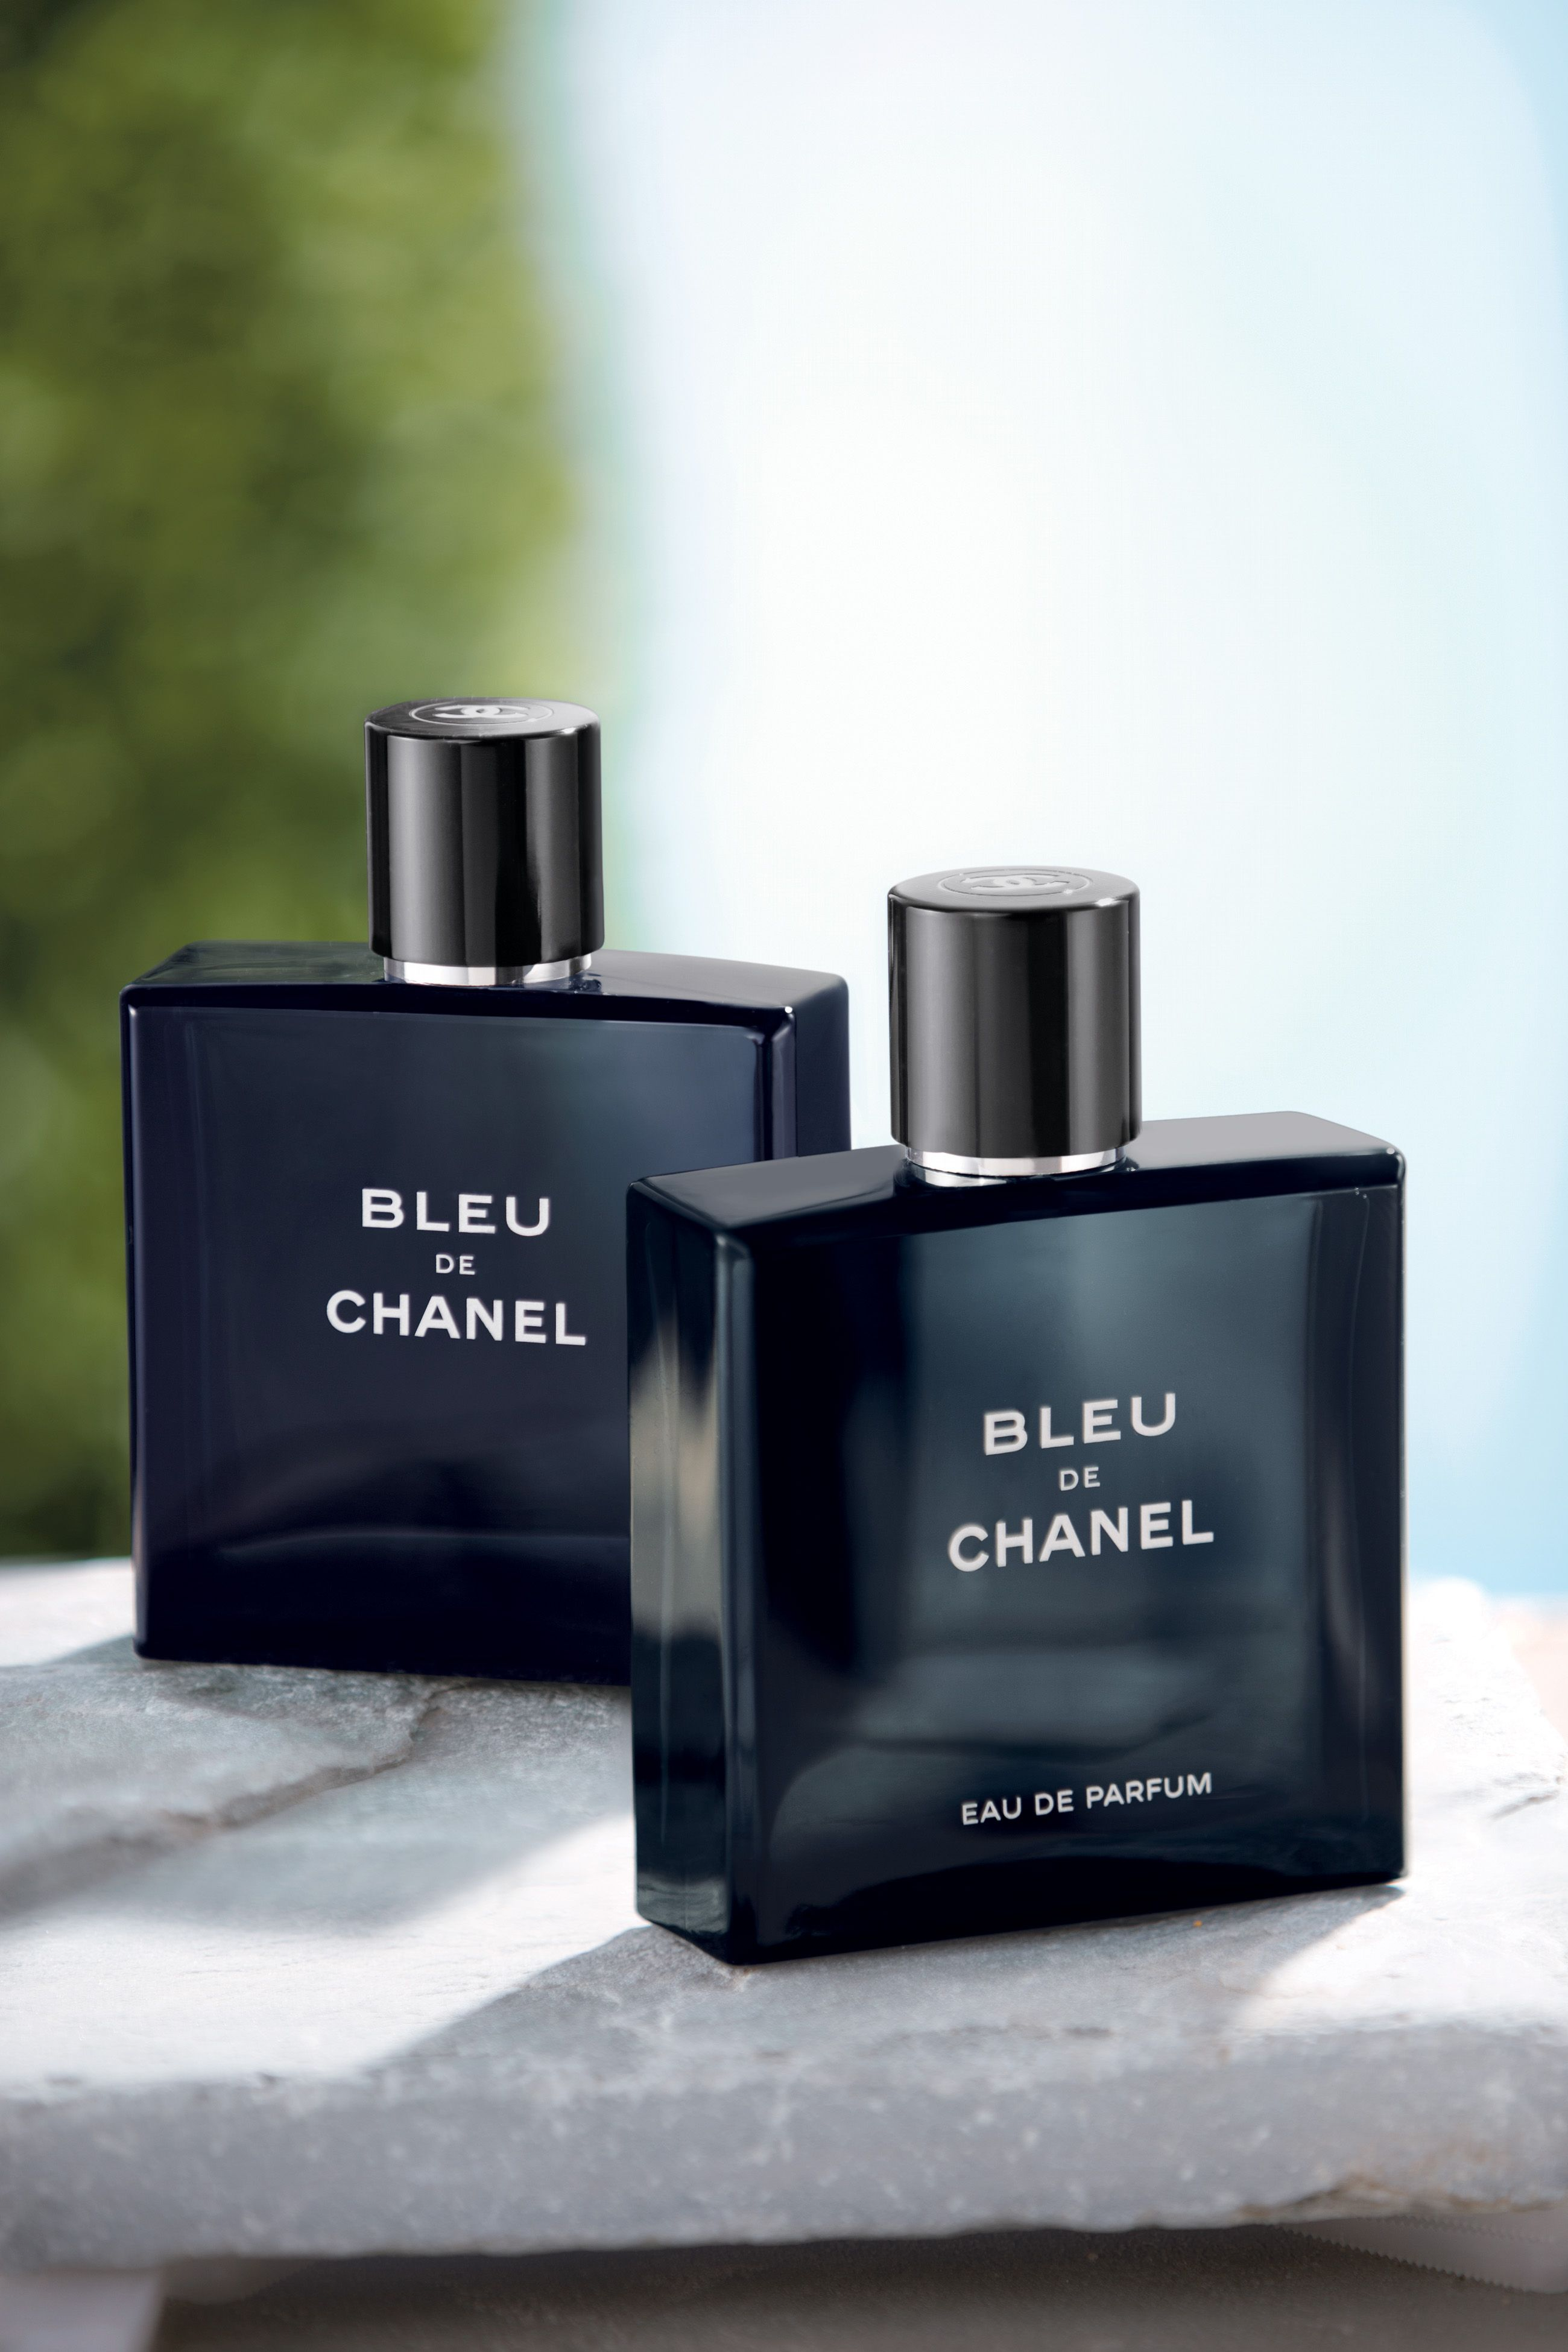 Mens Fragrance is a perfect gift for dad or the man in your life